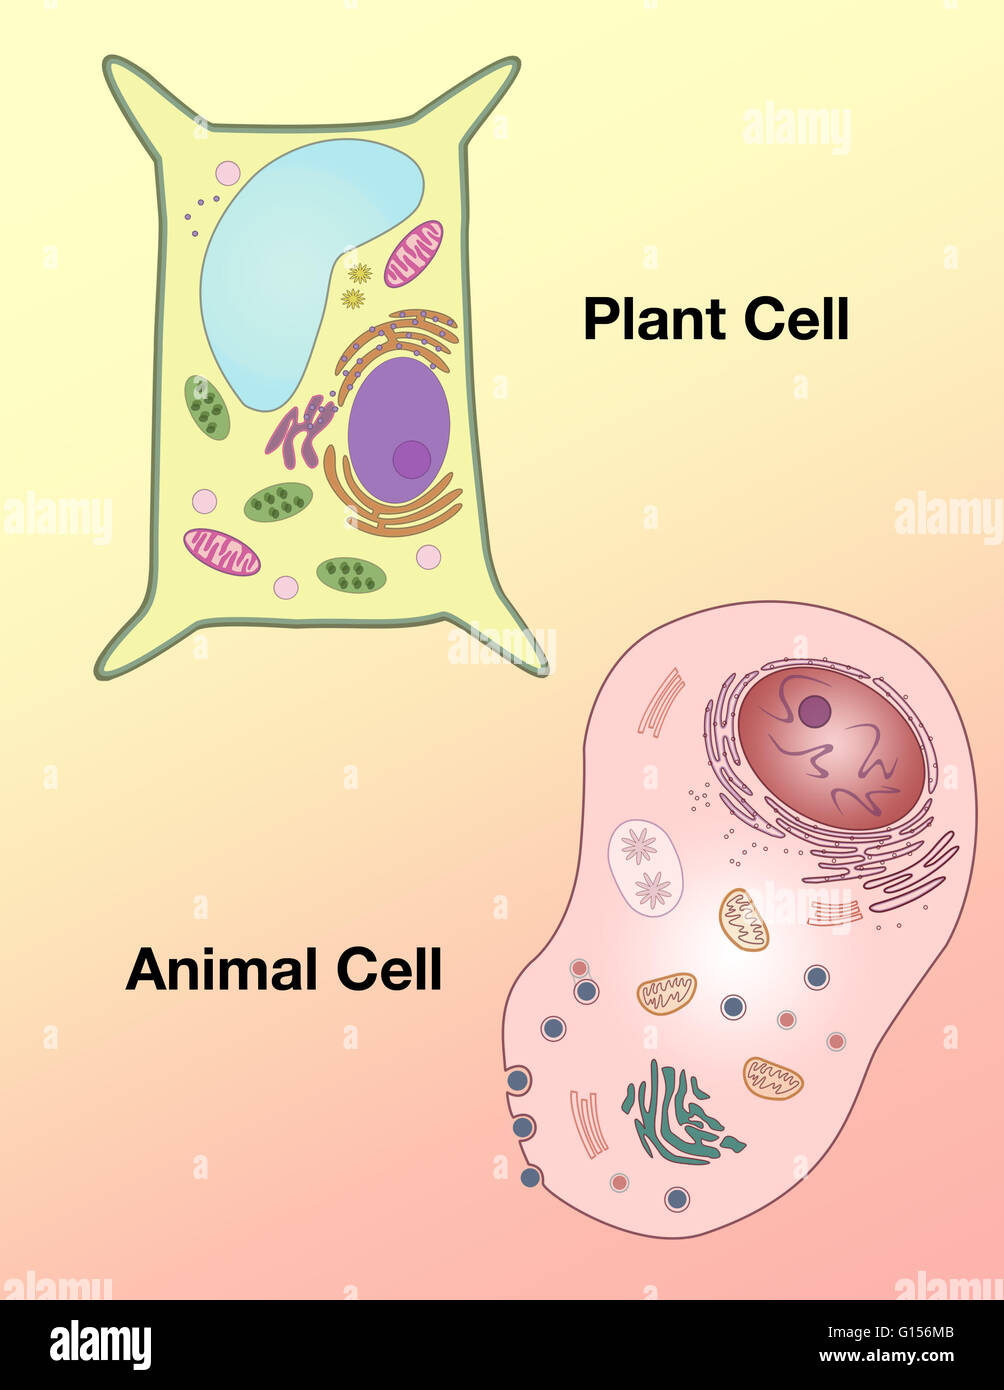 Animal Cell Drawing Stockfotos & Animal Cell Drawing Bilder - Alamy